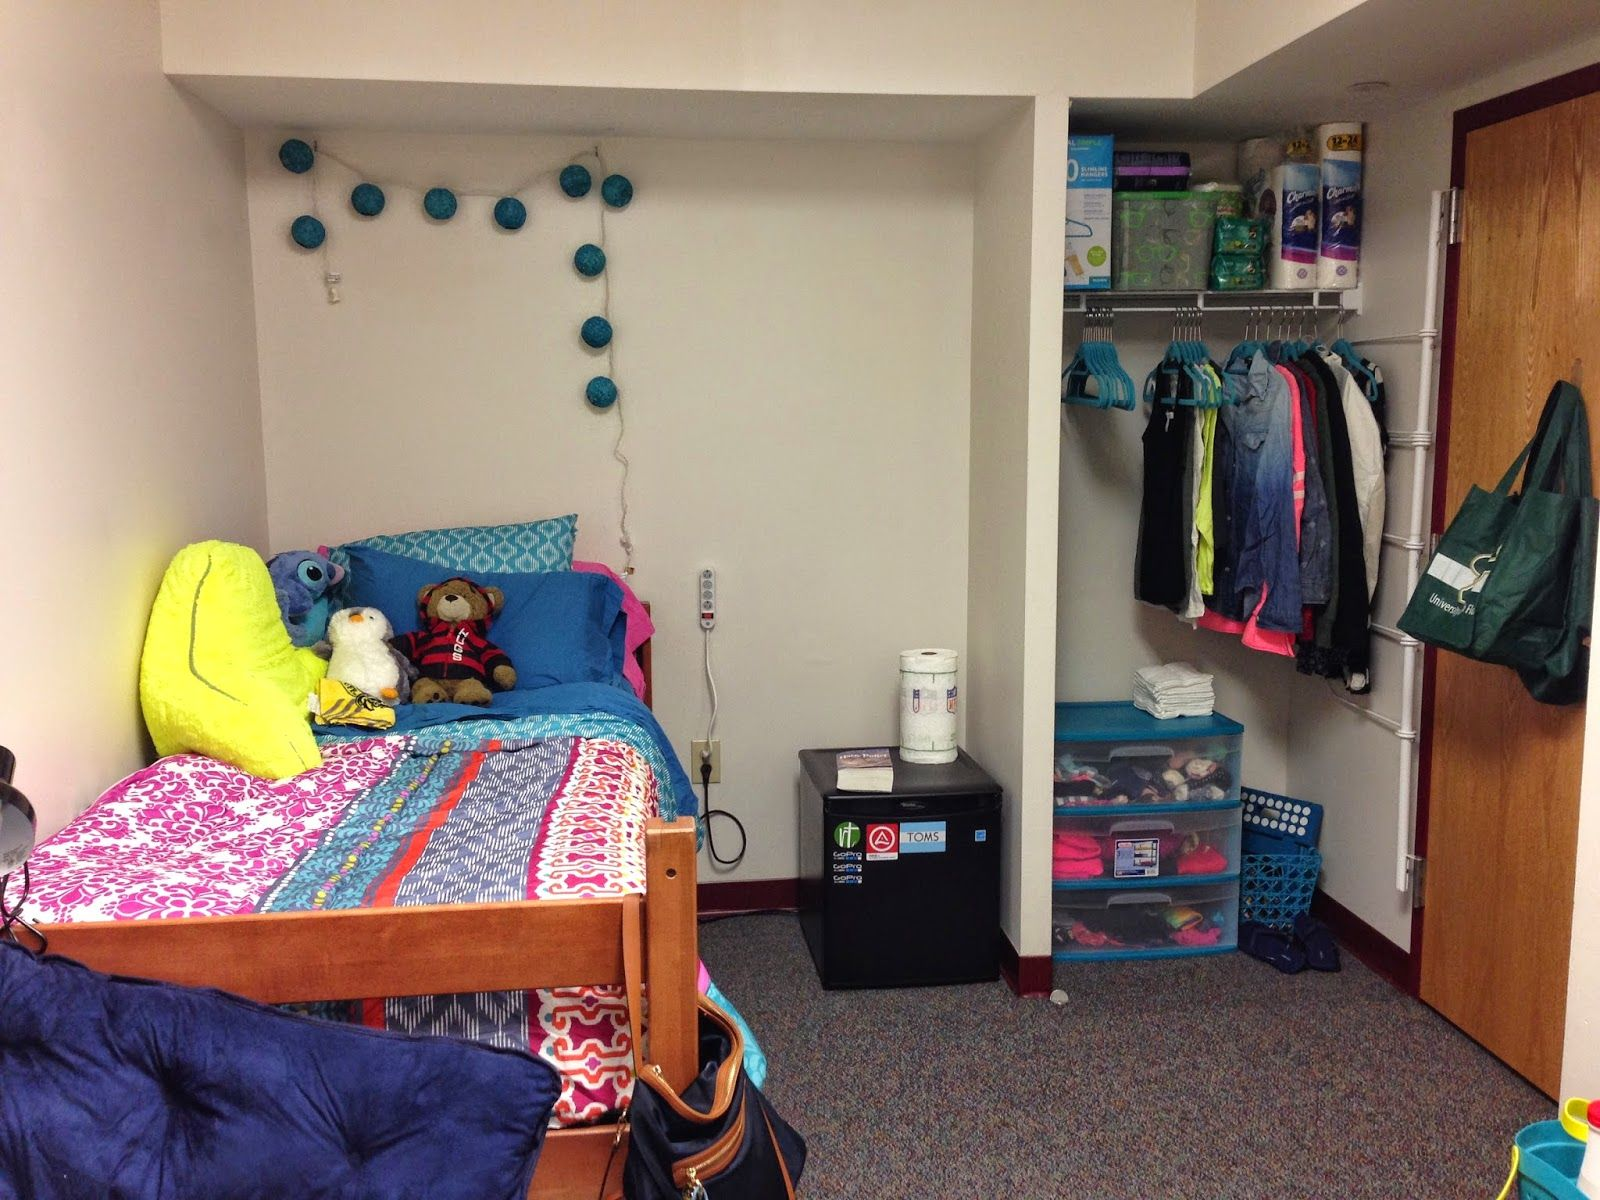 Dorm Room Tour With Images